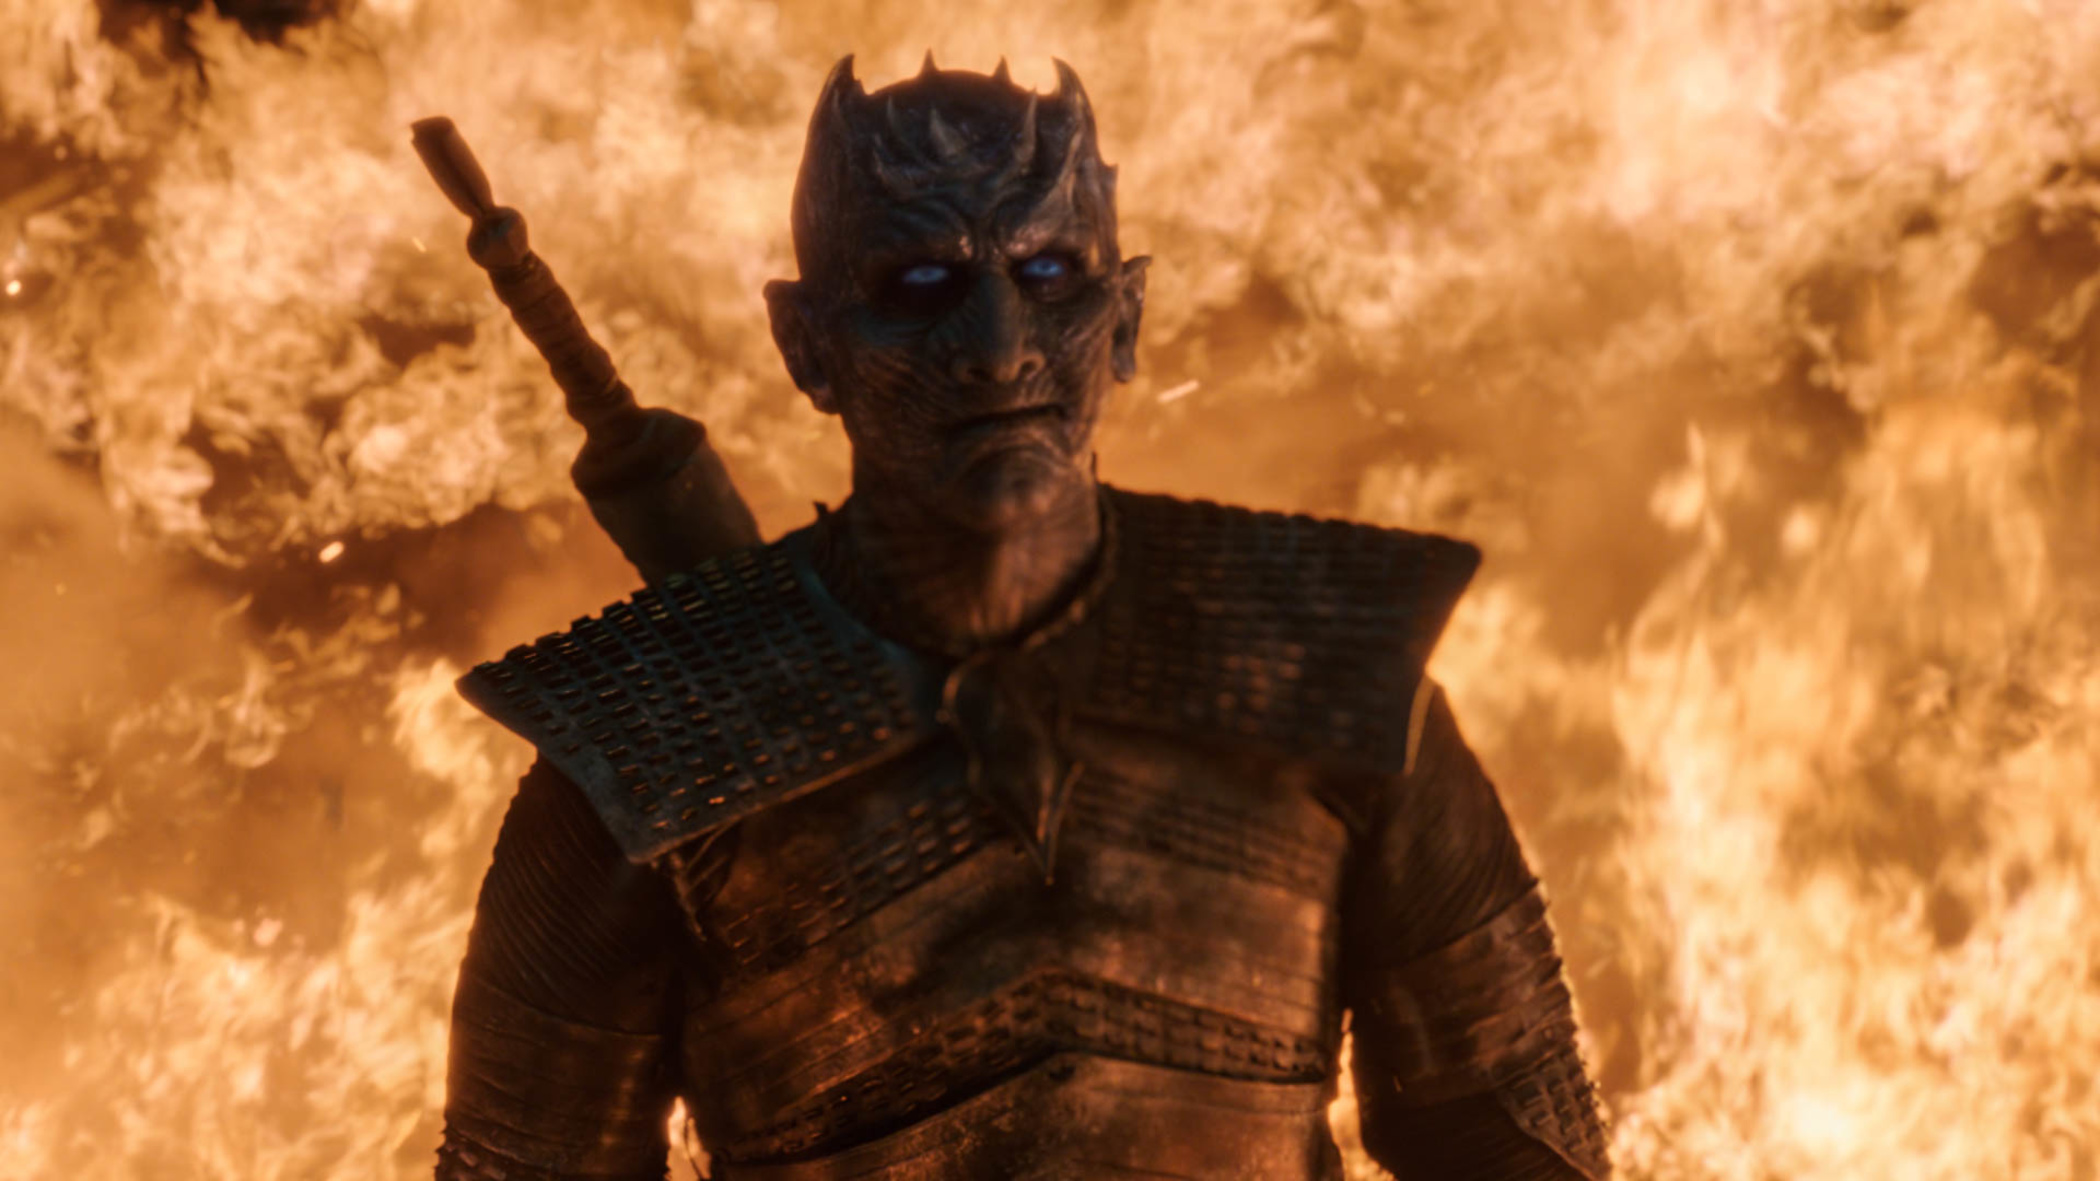 The Night King is so happy about the ratings he may just explode